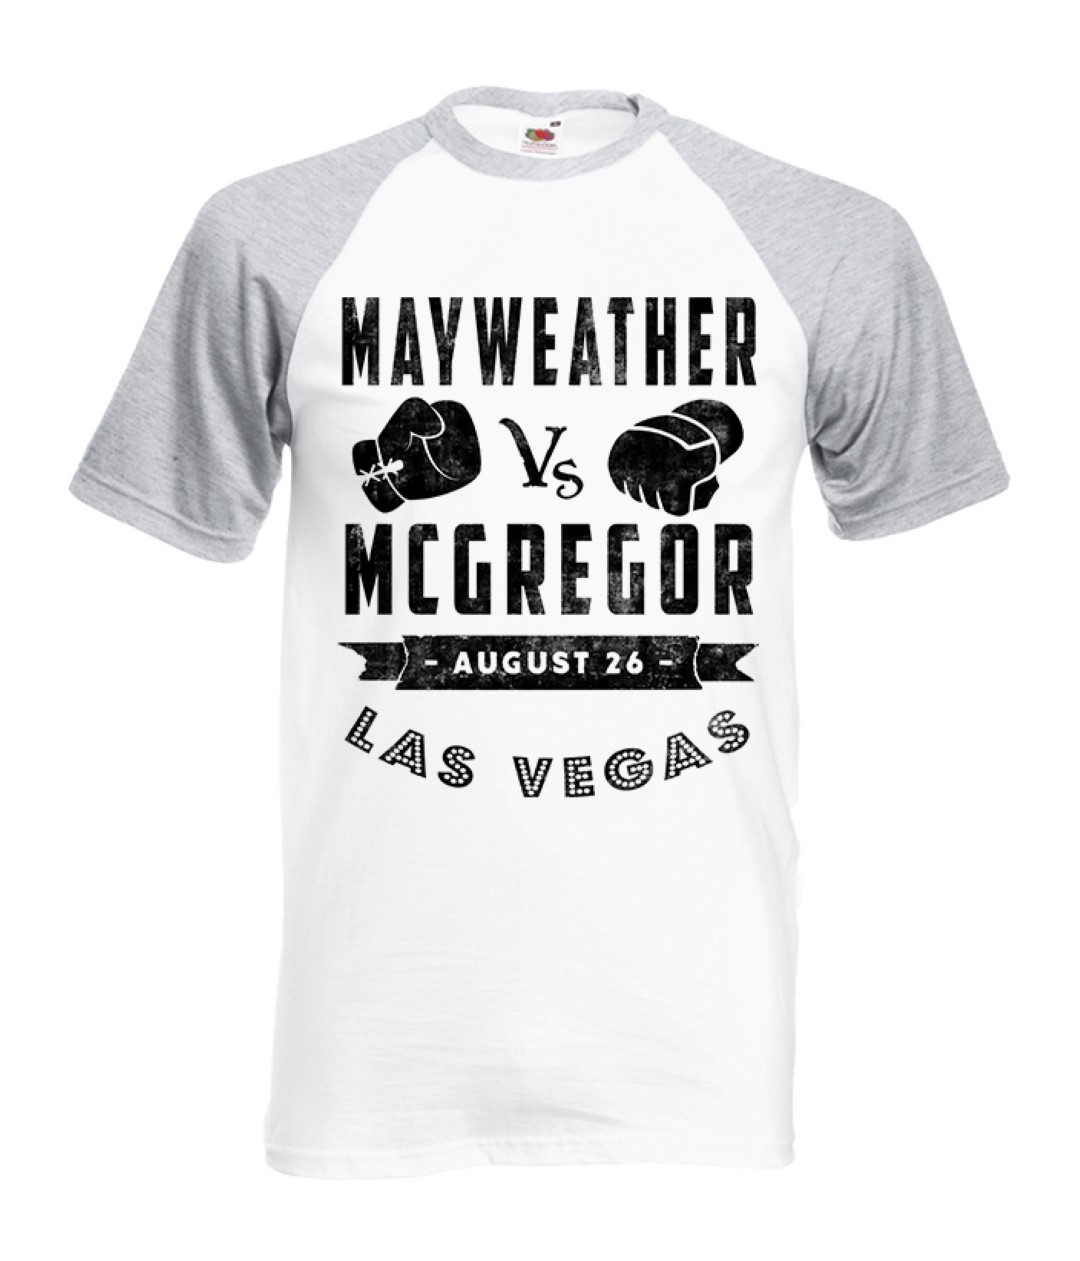 Mayweather vs mcgregor text t shirt august 26 las vegas for Photo t shirts with text